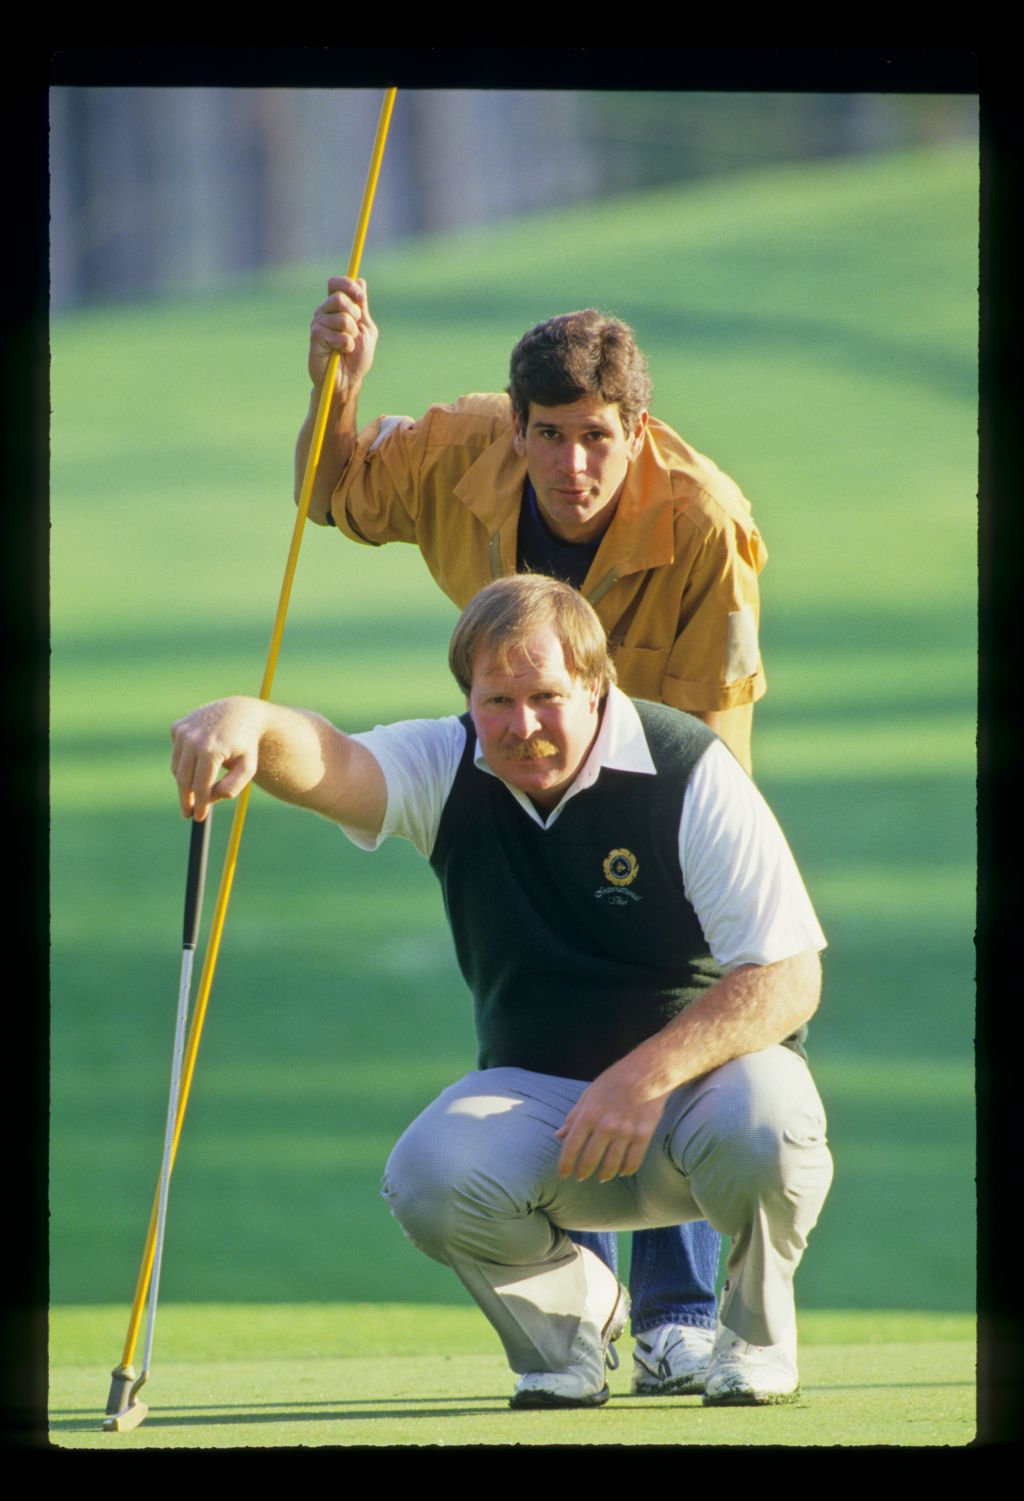 Craig Stadler and his caddie considering the line of a putt during the 1988 TPC